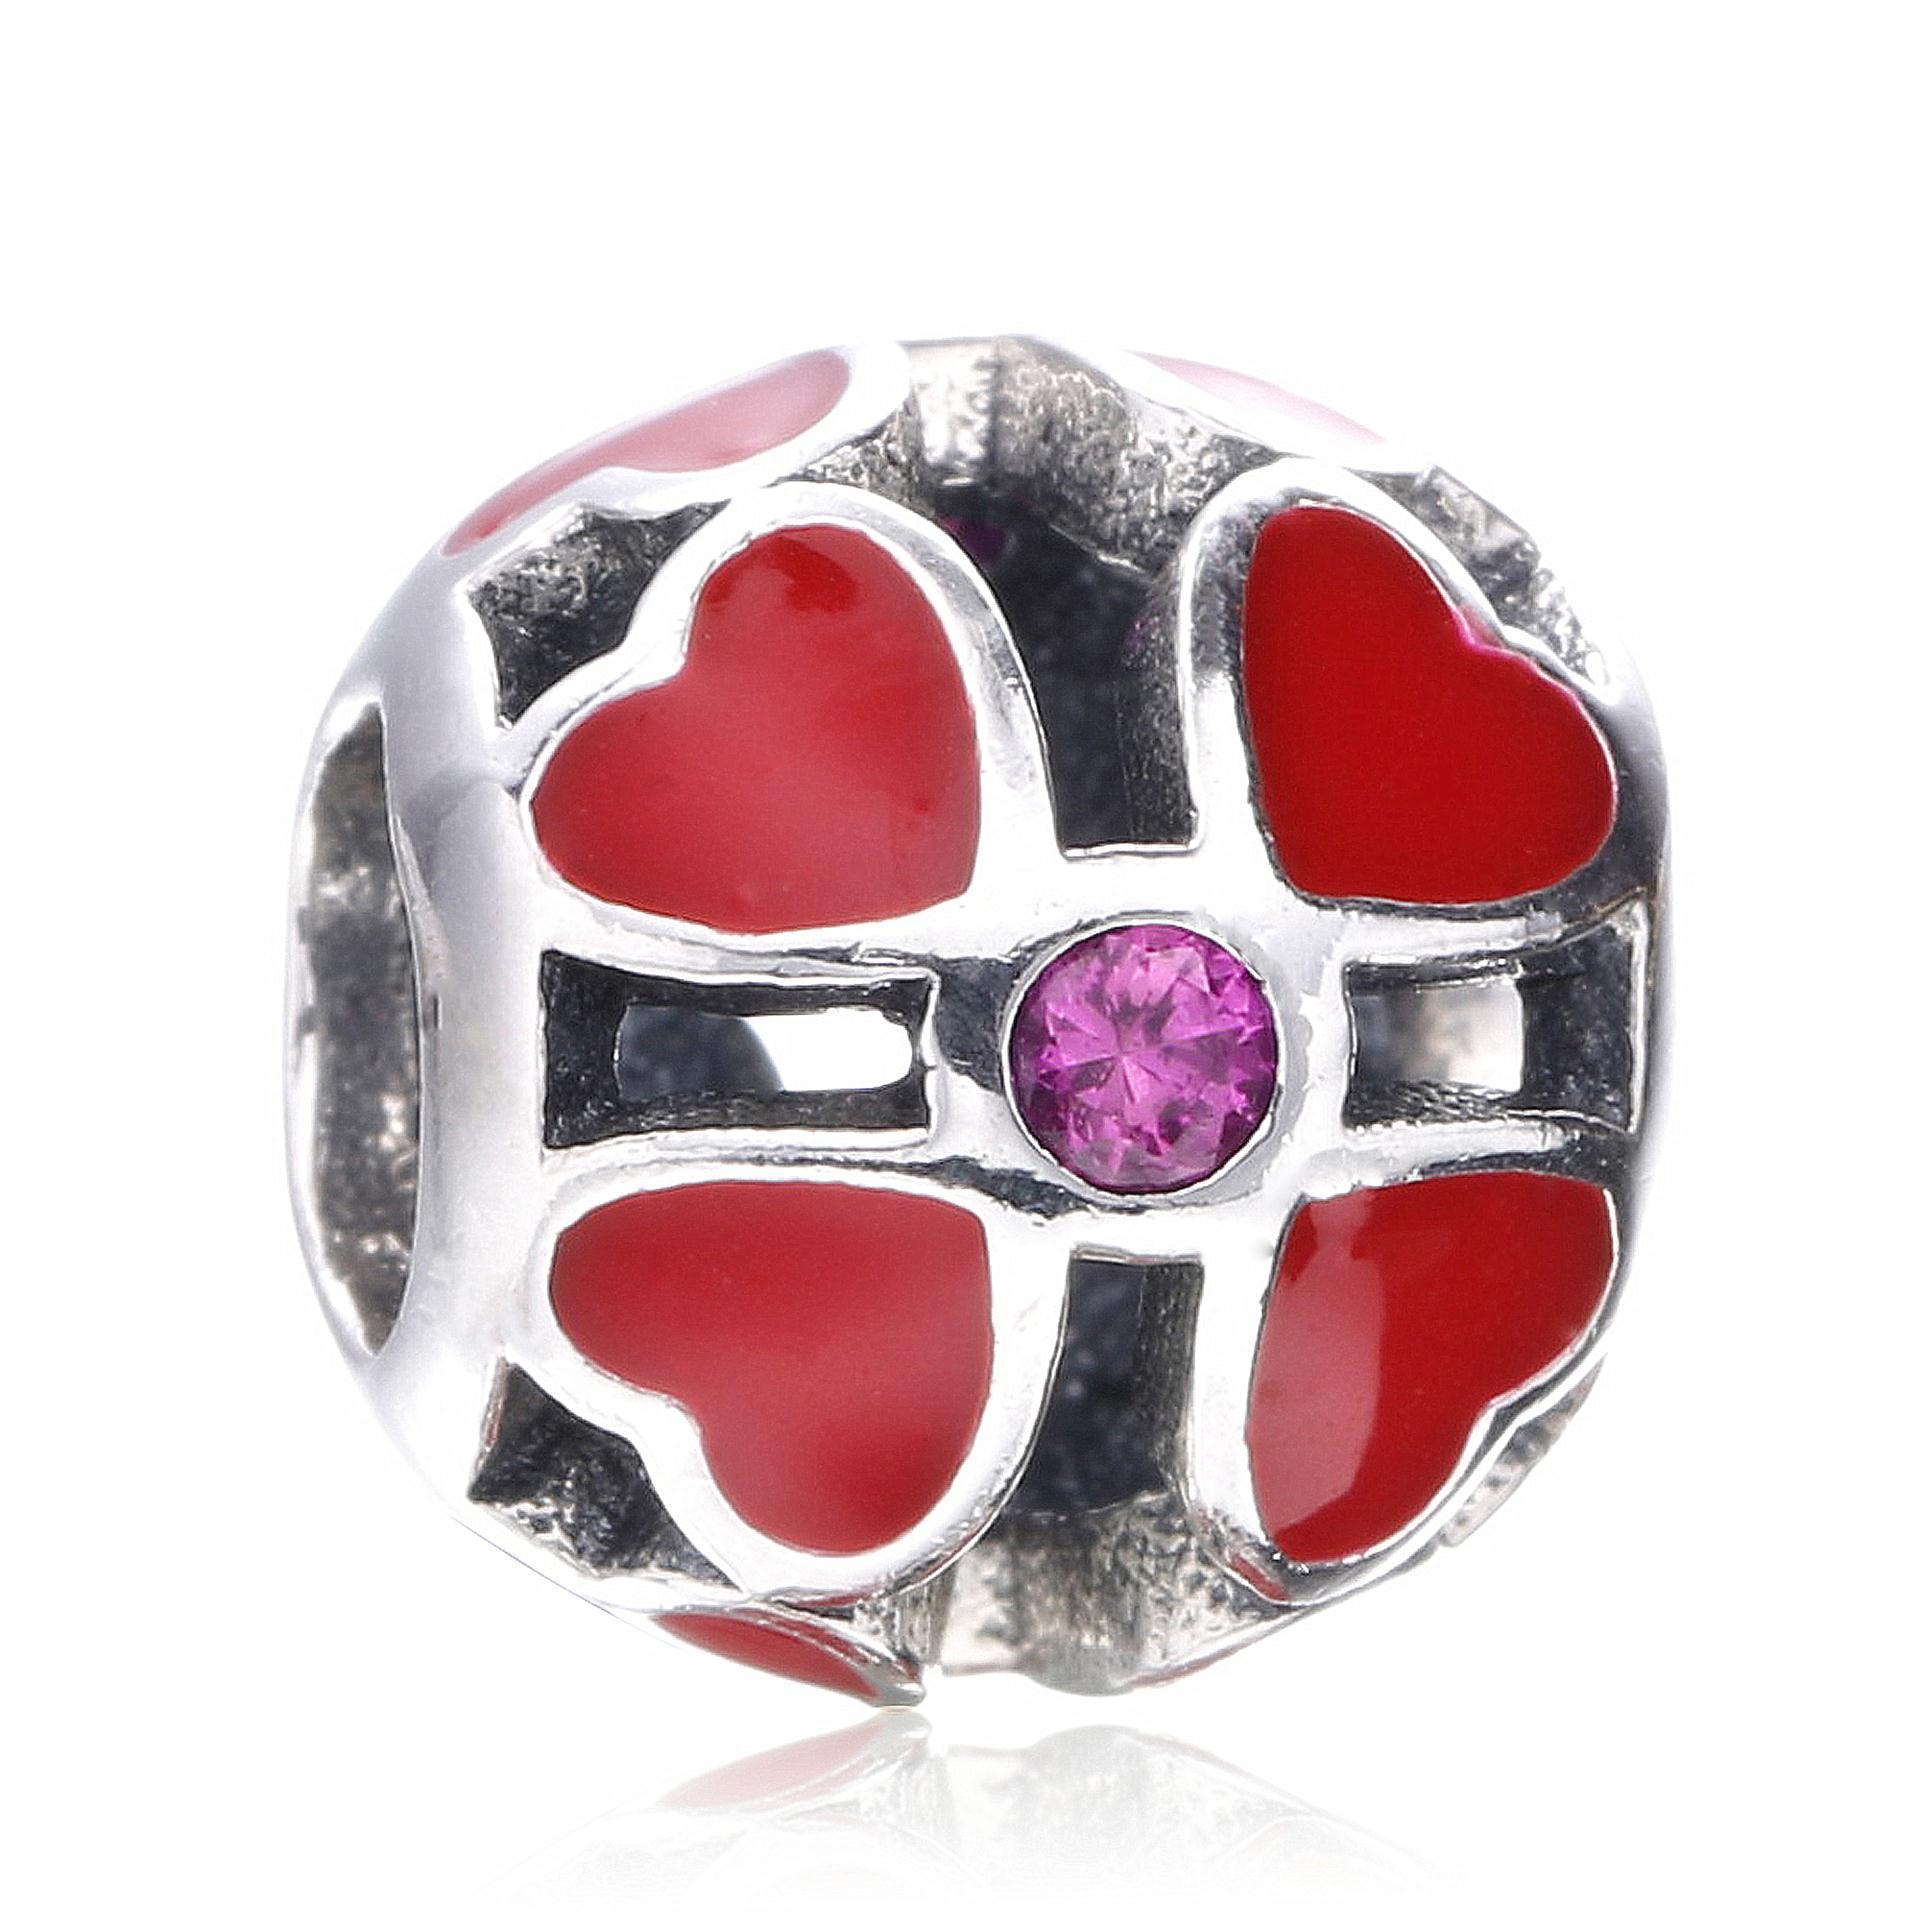 Real 925 Sterling Silver Red Lucky Clover Charm Fit Original Pandora Bracelet & Necklace Authentic Jewelry Women Christmas Gift